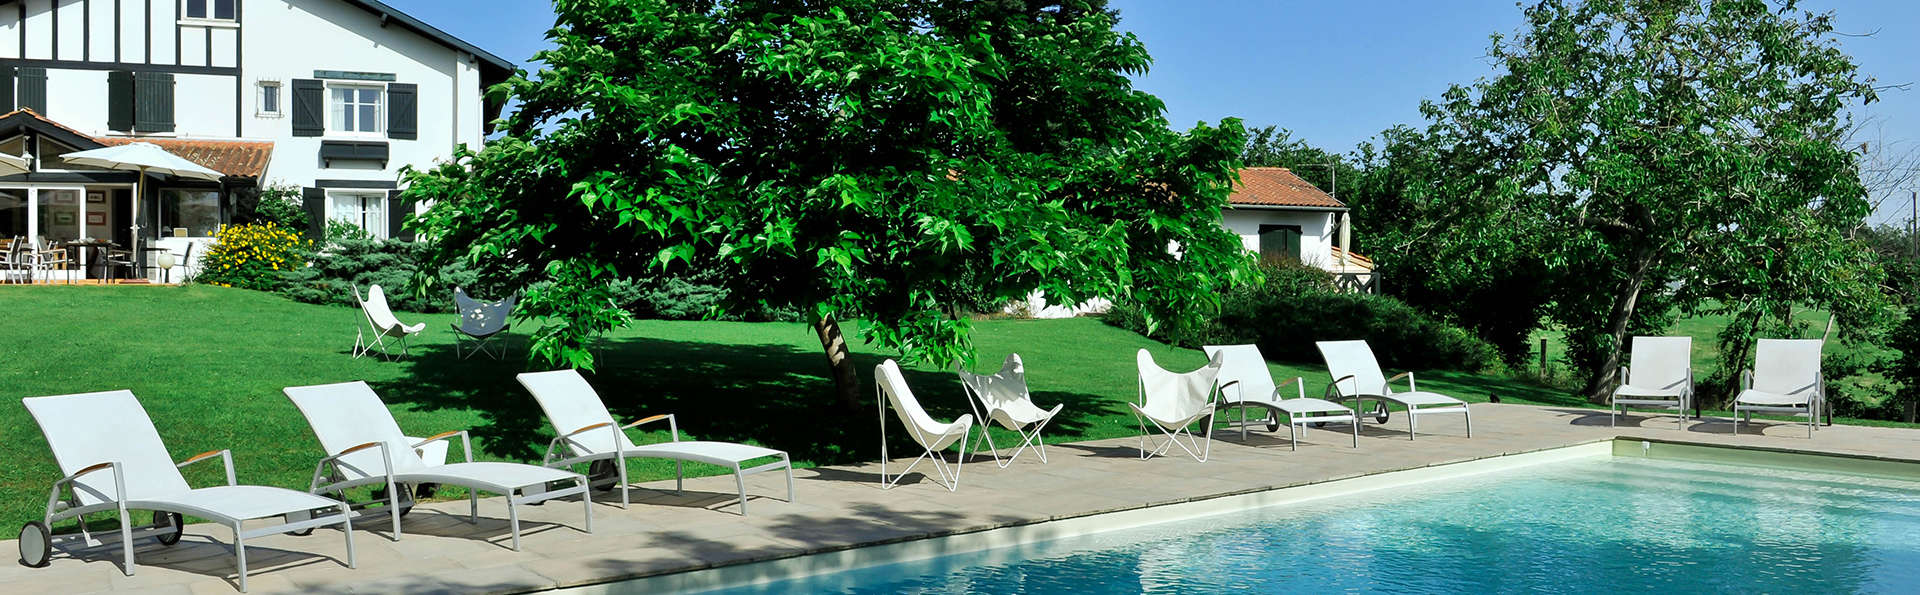 Hôtel Laminak, The Originals Relais (Relais du Silence) - Edit_Pool2.jpg